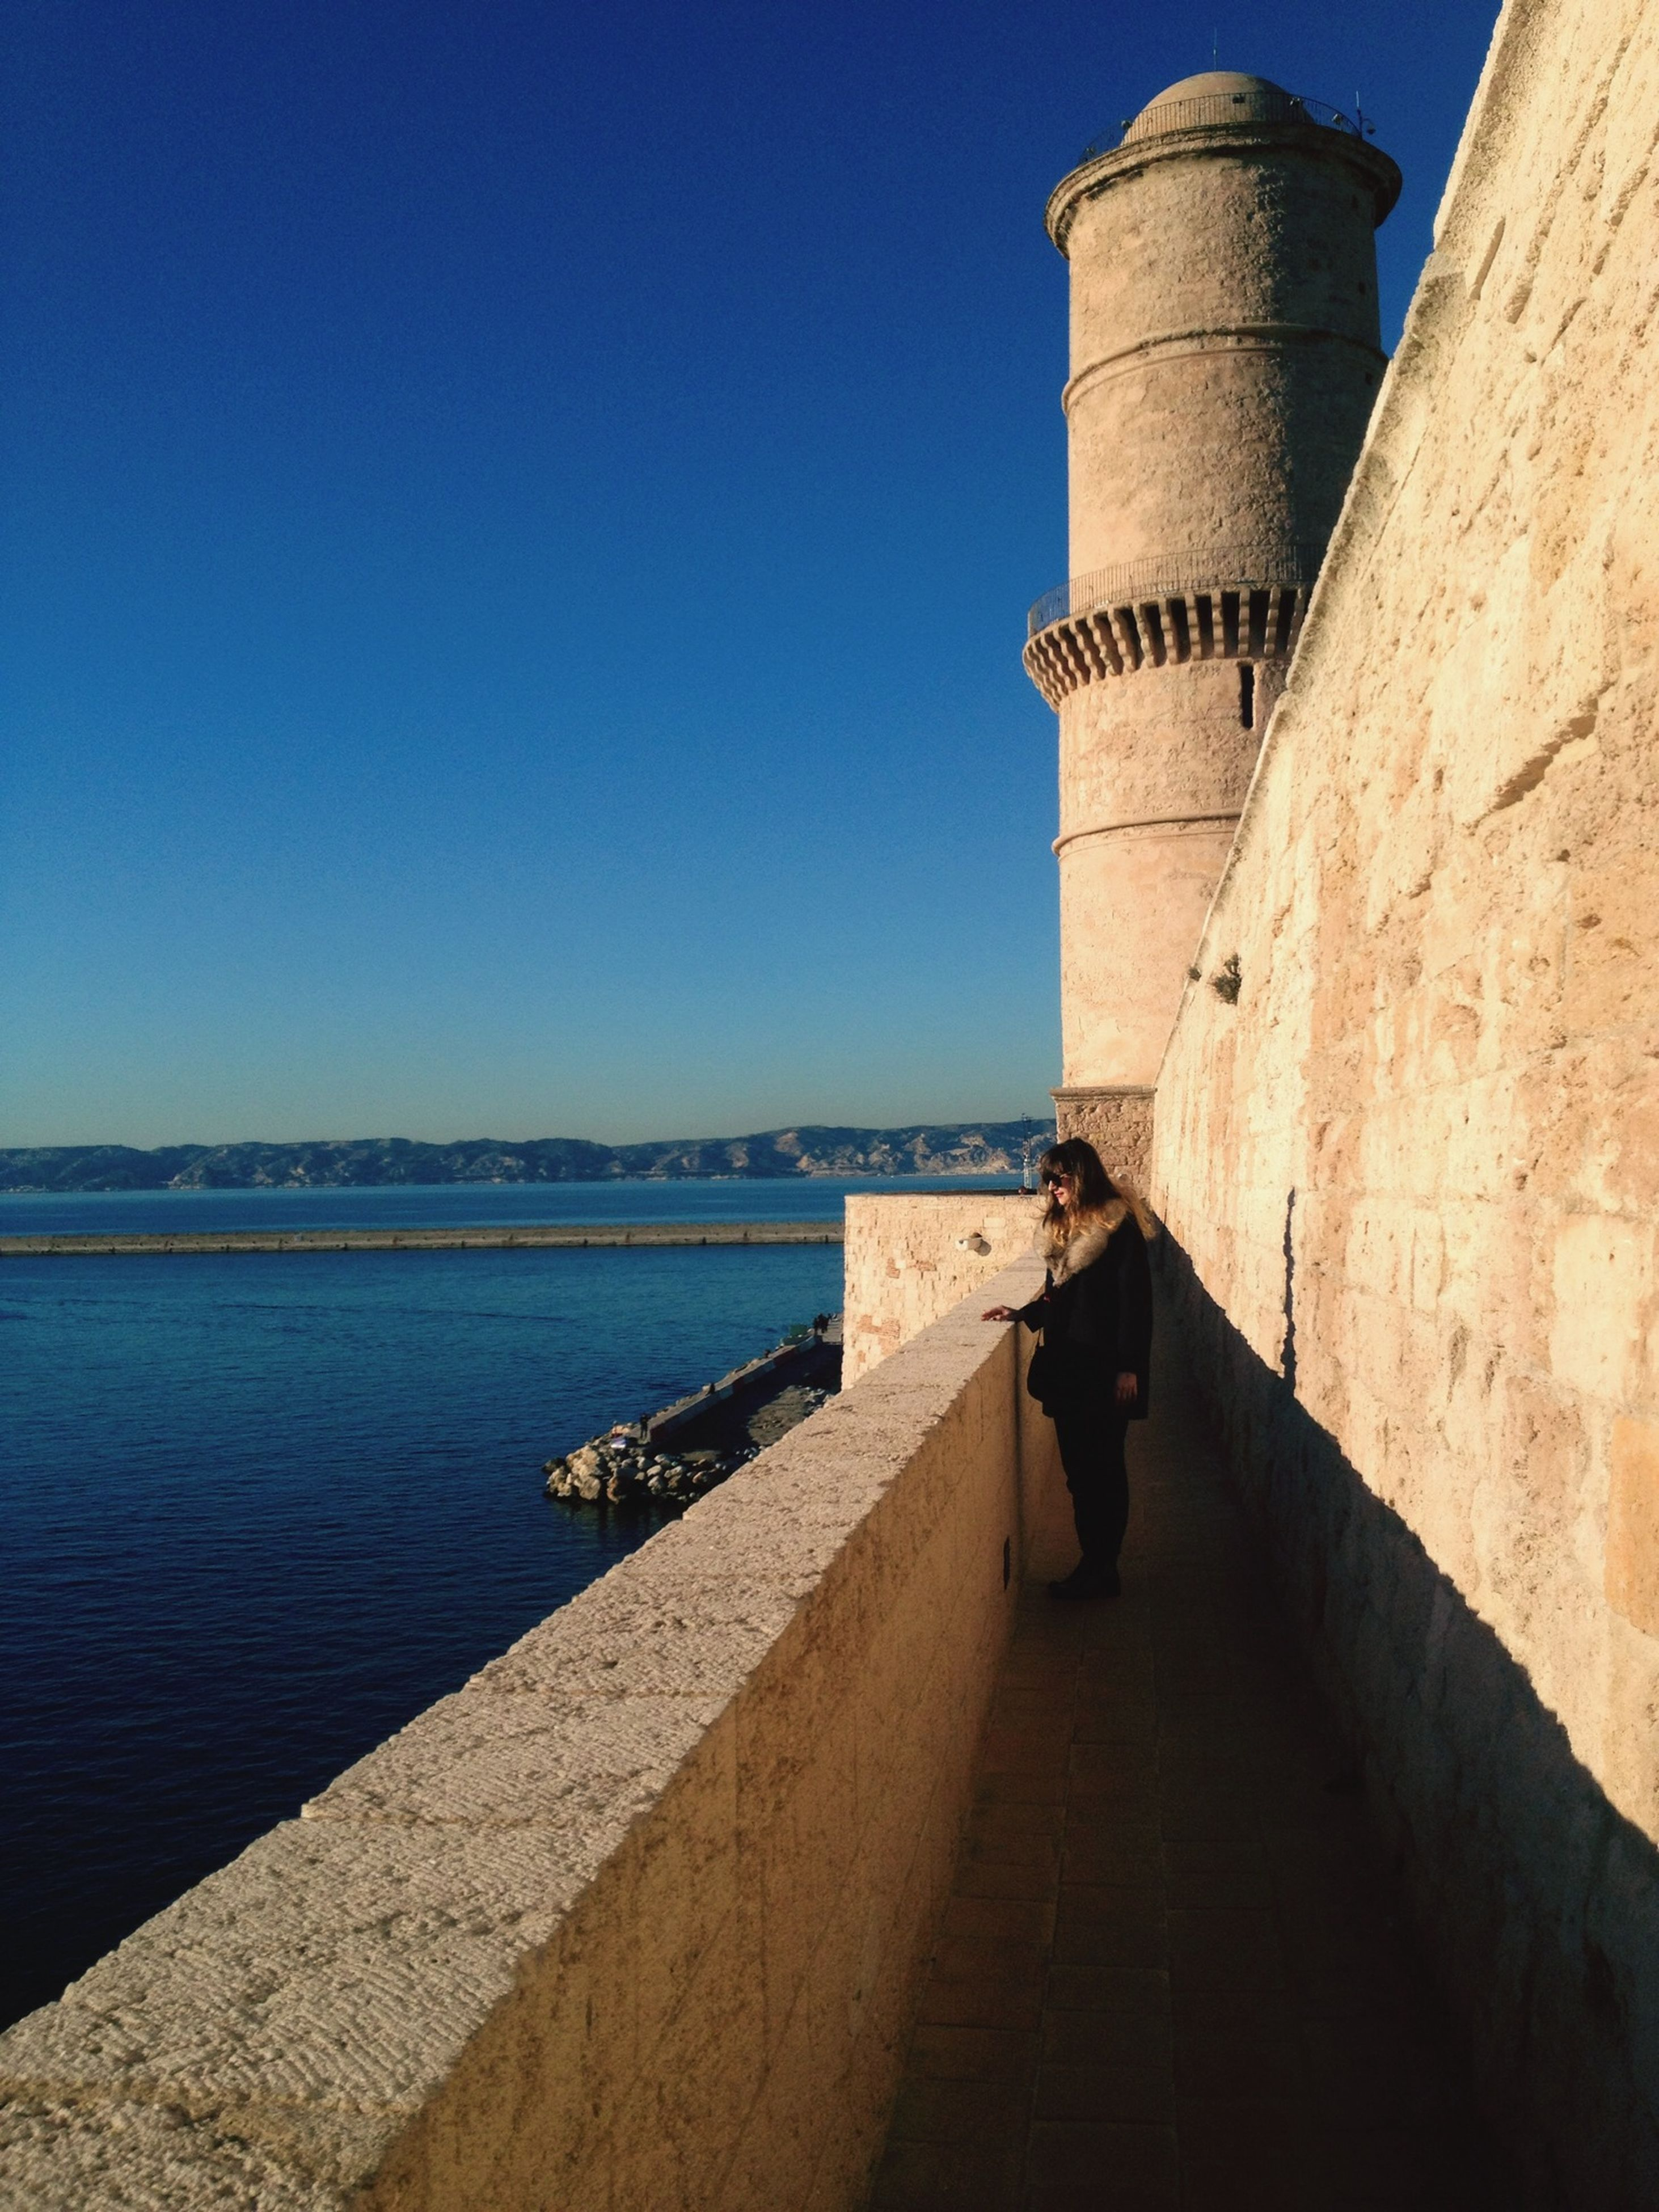 clear sky, architecture, built structure, blue, building exterior, copy space, sea, water, the way forward, sunlight, lifestyles, leisure activity, tourism, day, horizon over water, men, rear view, person